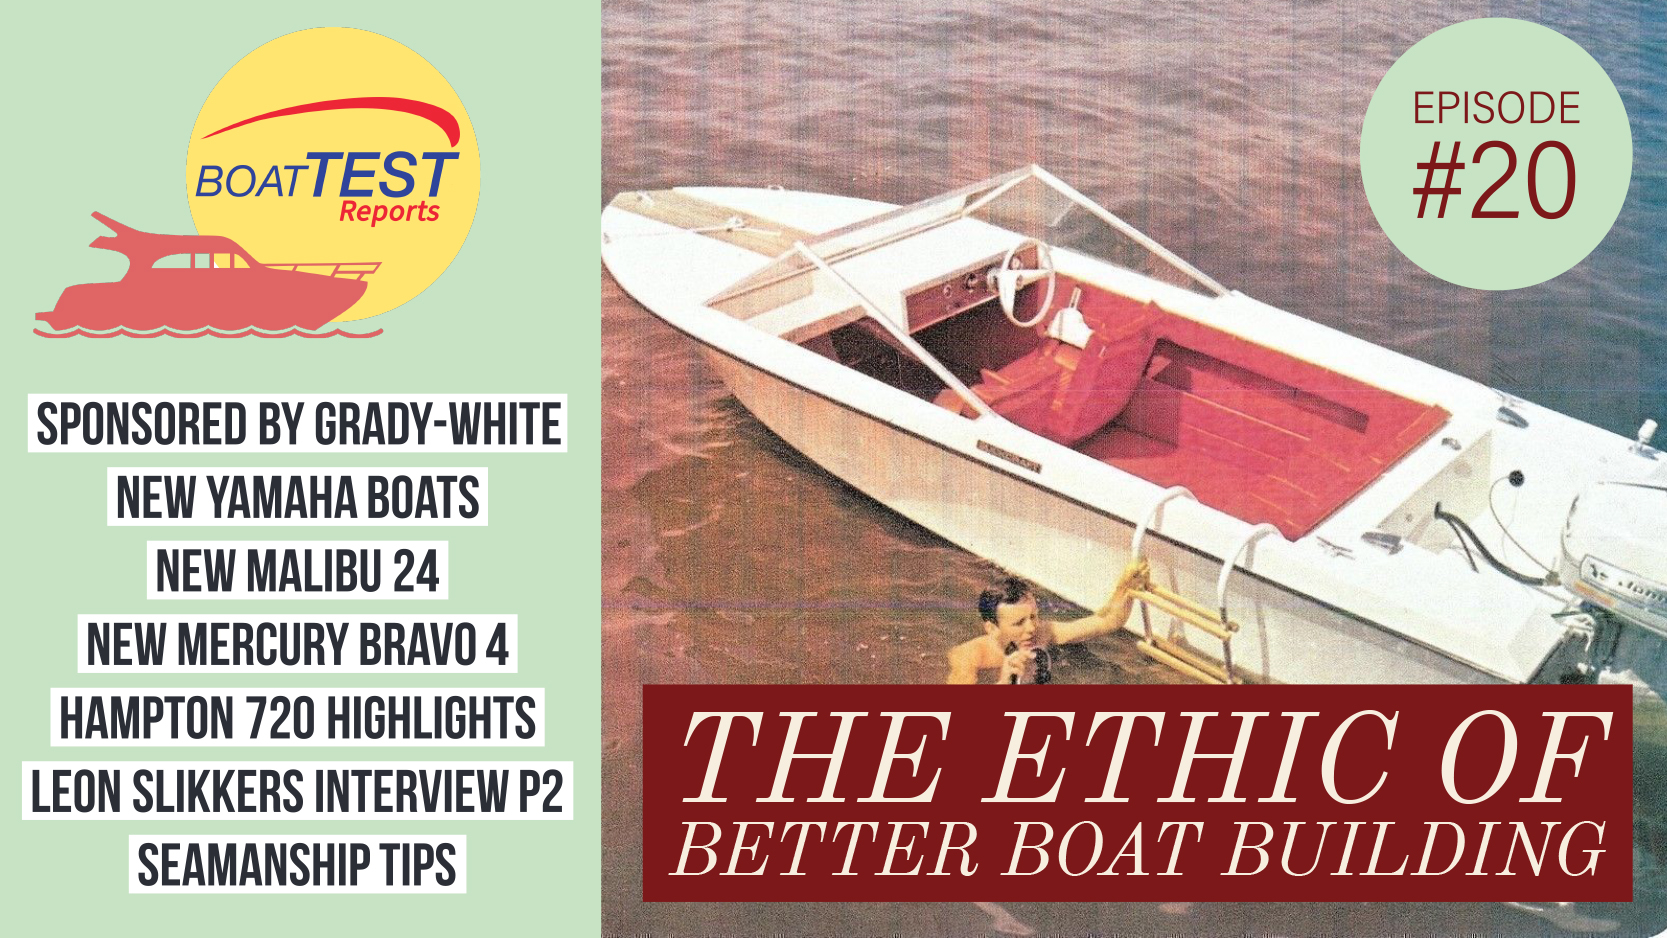 BoatTEST REPORTS